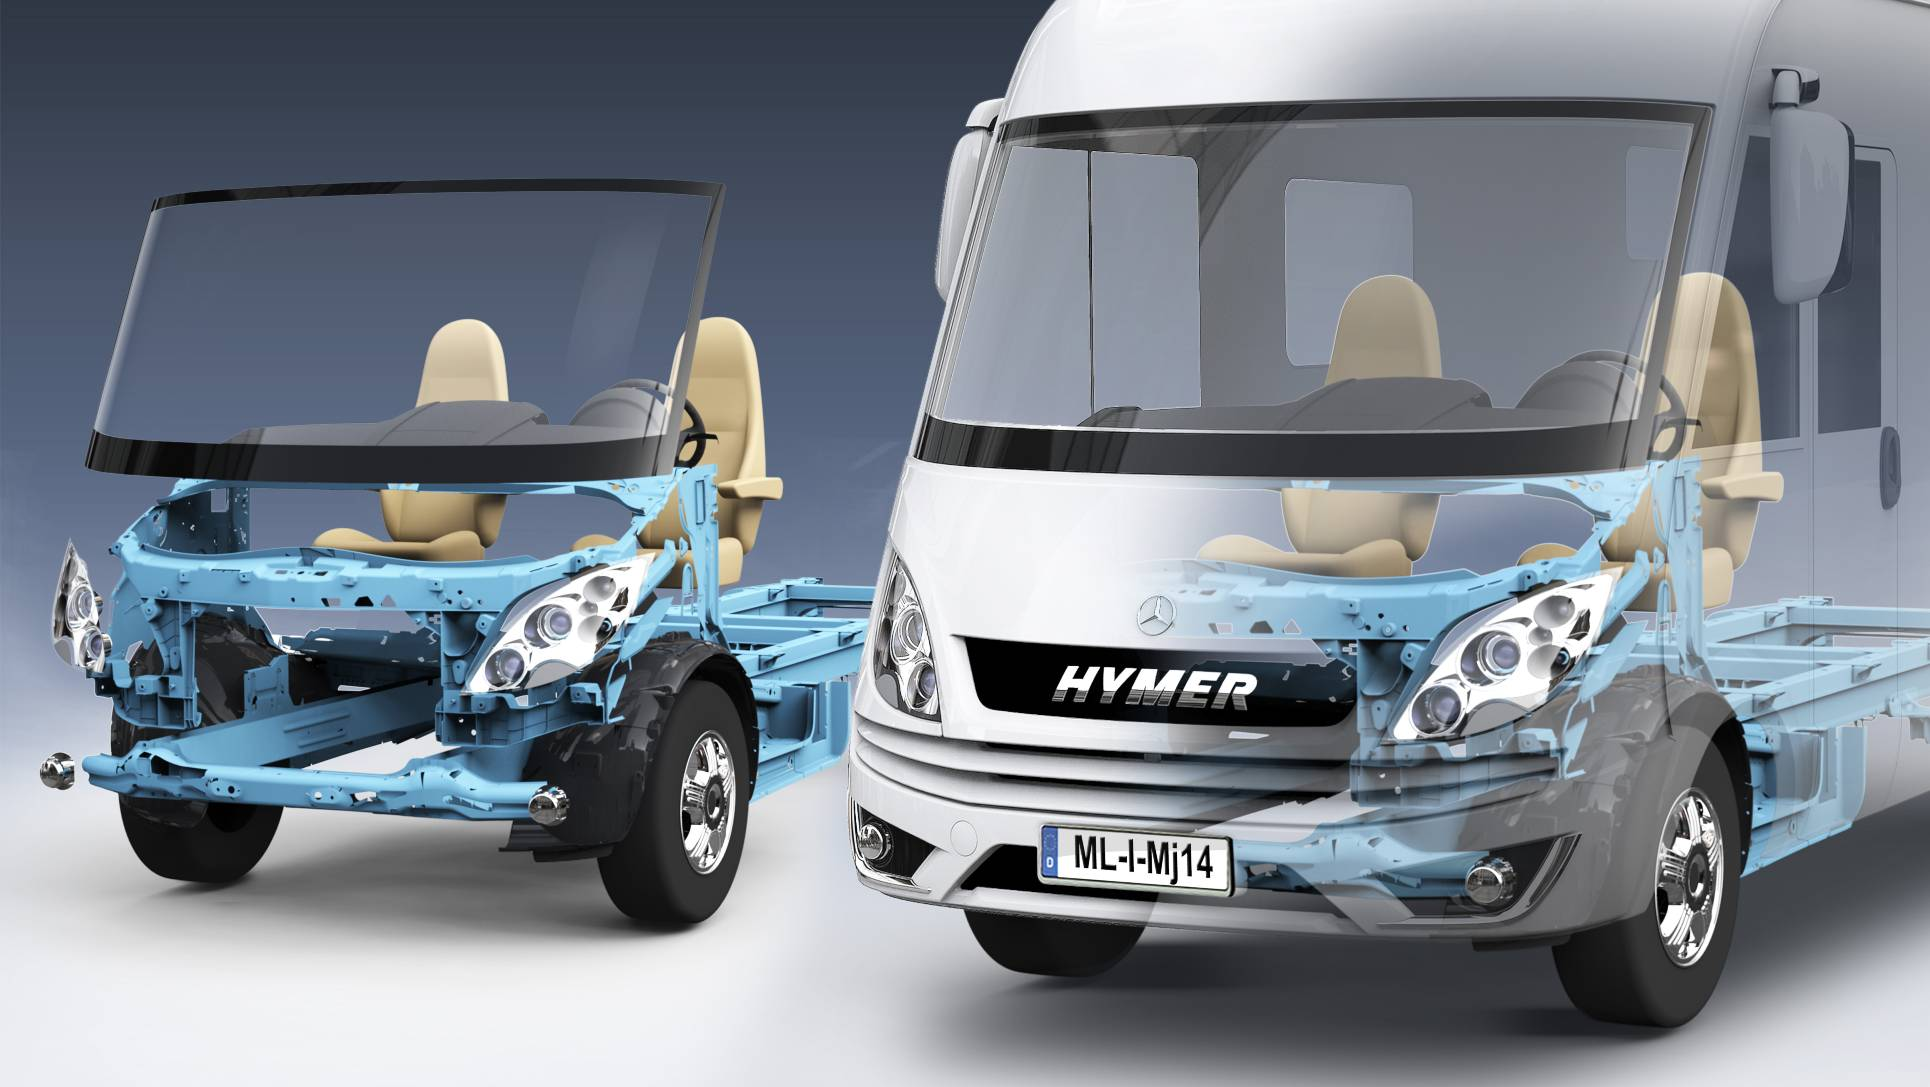 HYMER ML-i MJ 2015 Phantomdarstellung